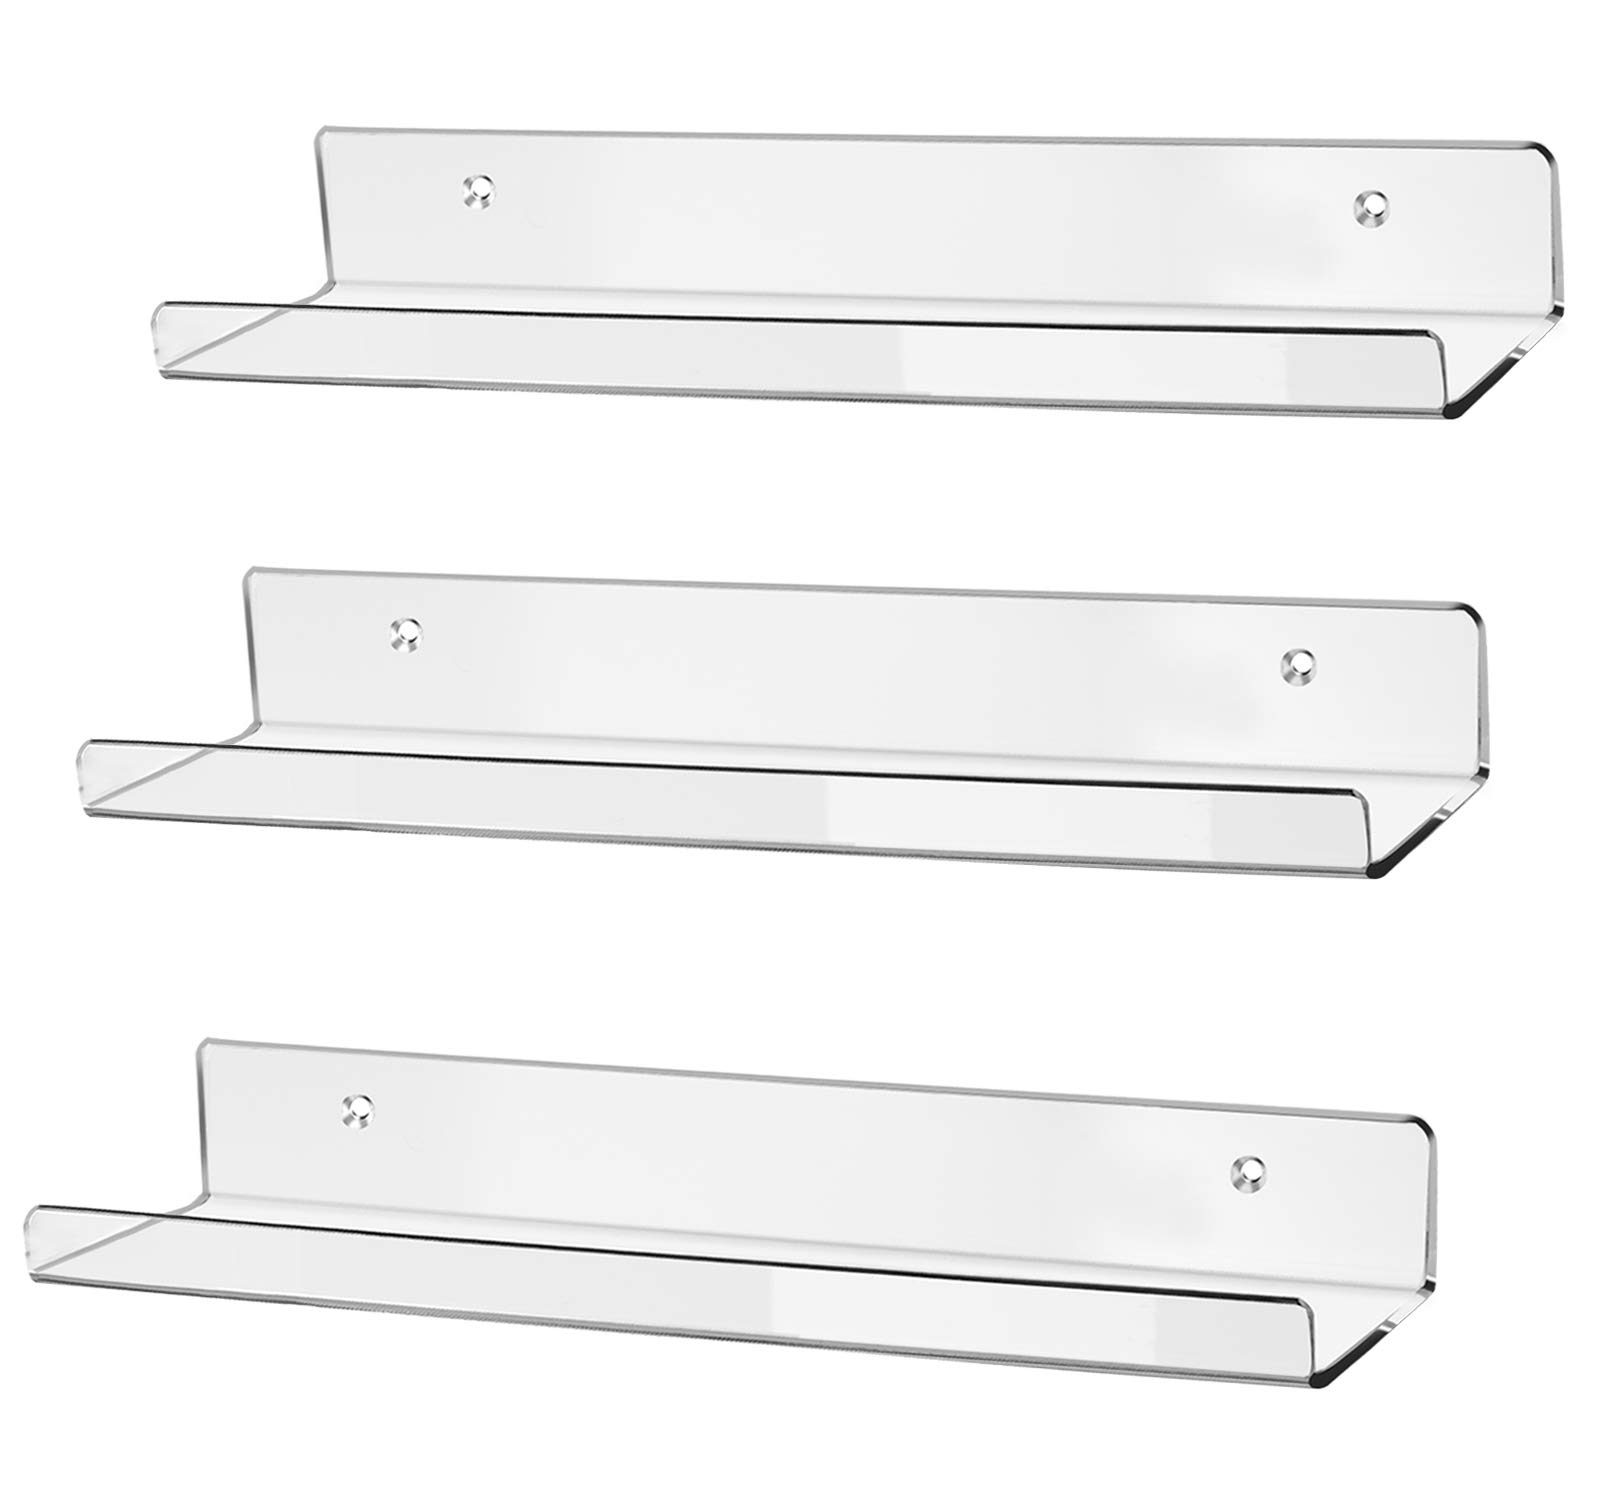 hblife 15'' Acrylic Floating Wall Ledge Shelf, Wall Mounted Nursery Kids Bookshelf, Invisible Spice Rack, Clear 5MM Thick Bathroom Storage Shelves Display Organizer, 15'' L x 4'' D x 2'' H, Set of 3 by hblife